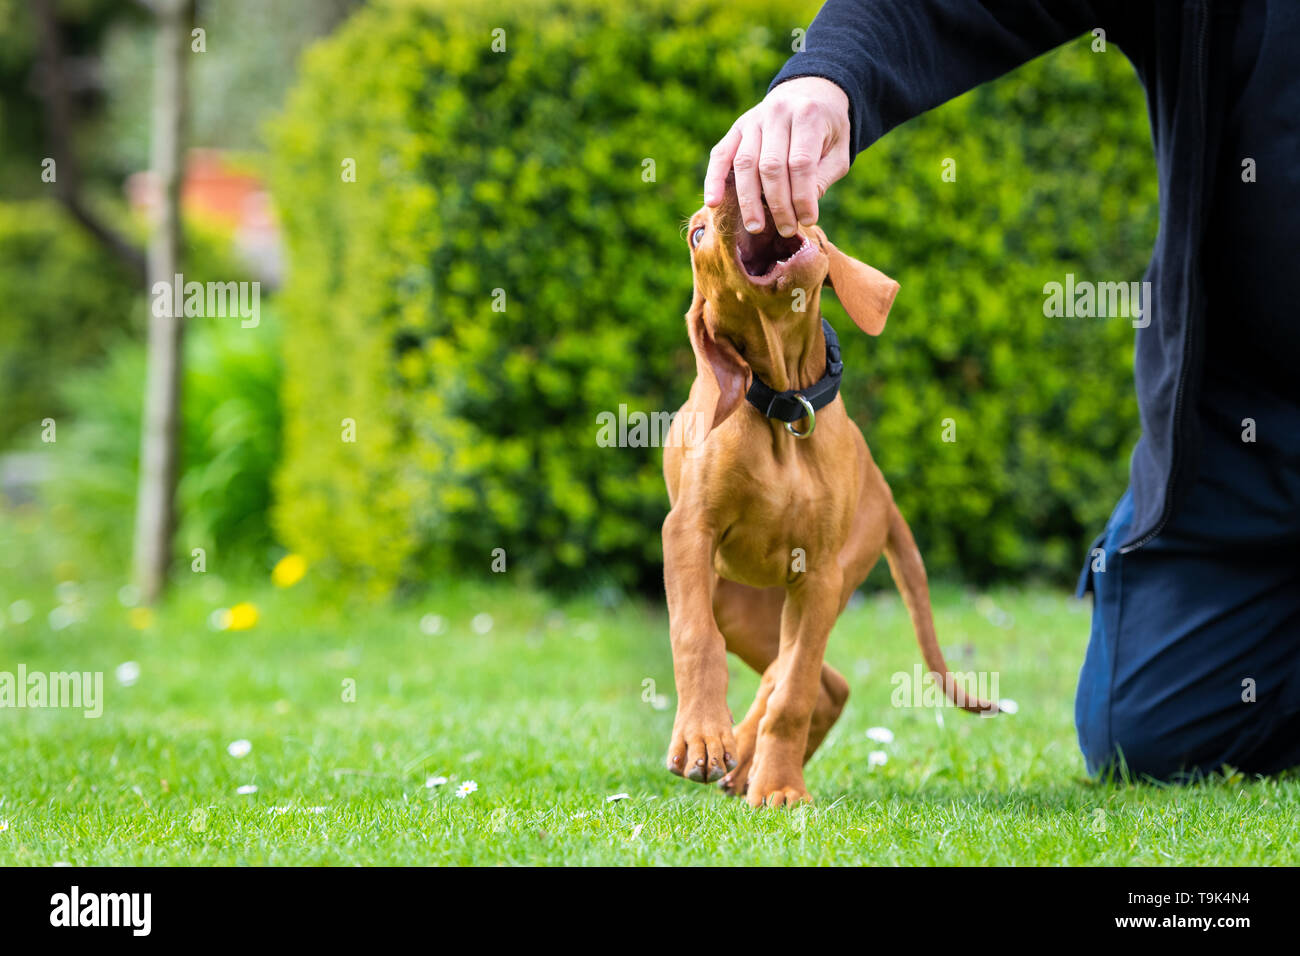 2 months old cute hungarian vizsla dog puppy biting owners fingers while playing outdoors in the garden. Obedience training. - Stock Image